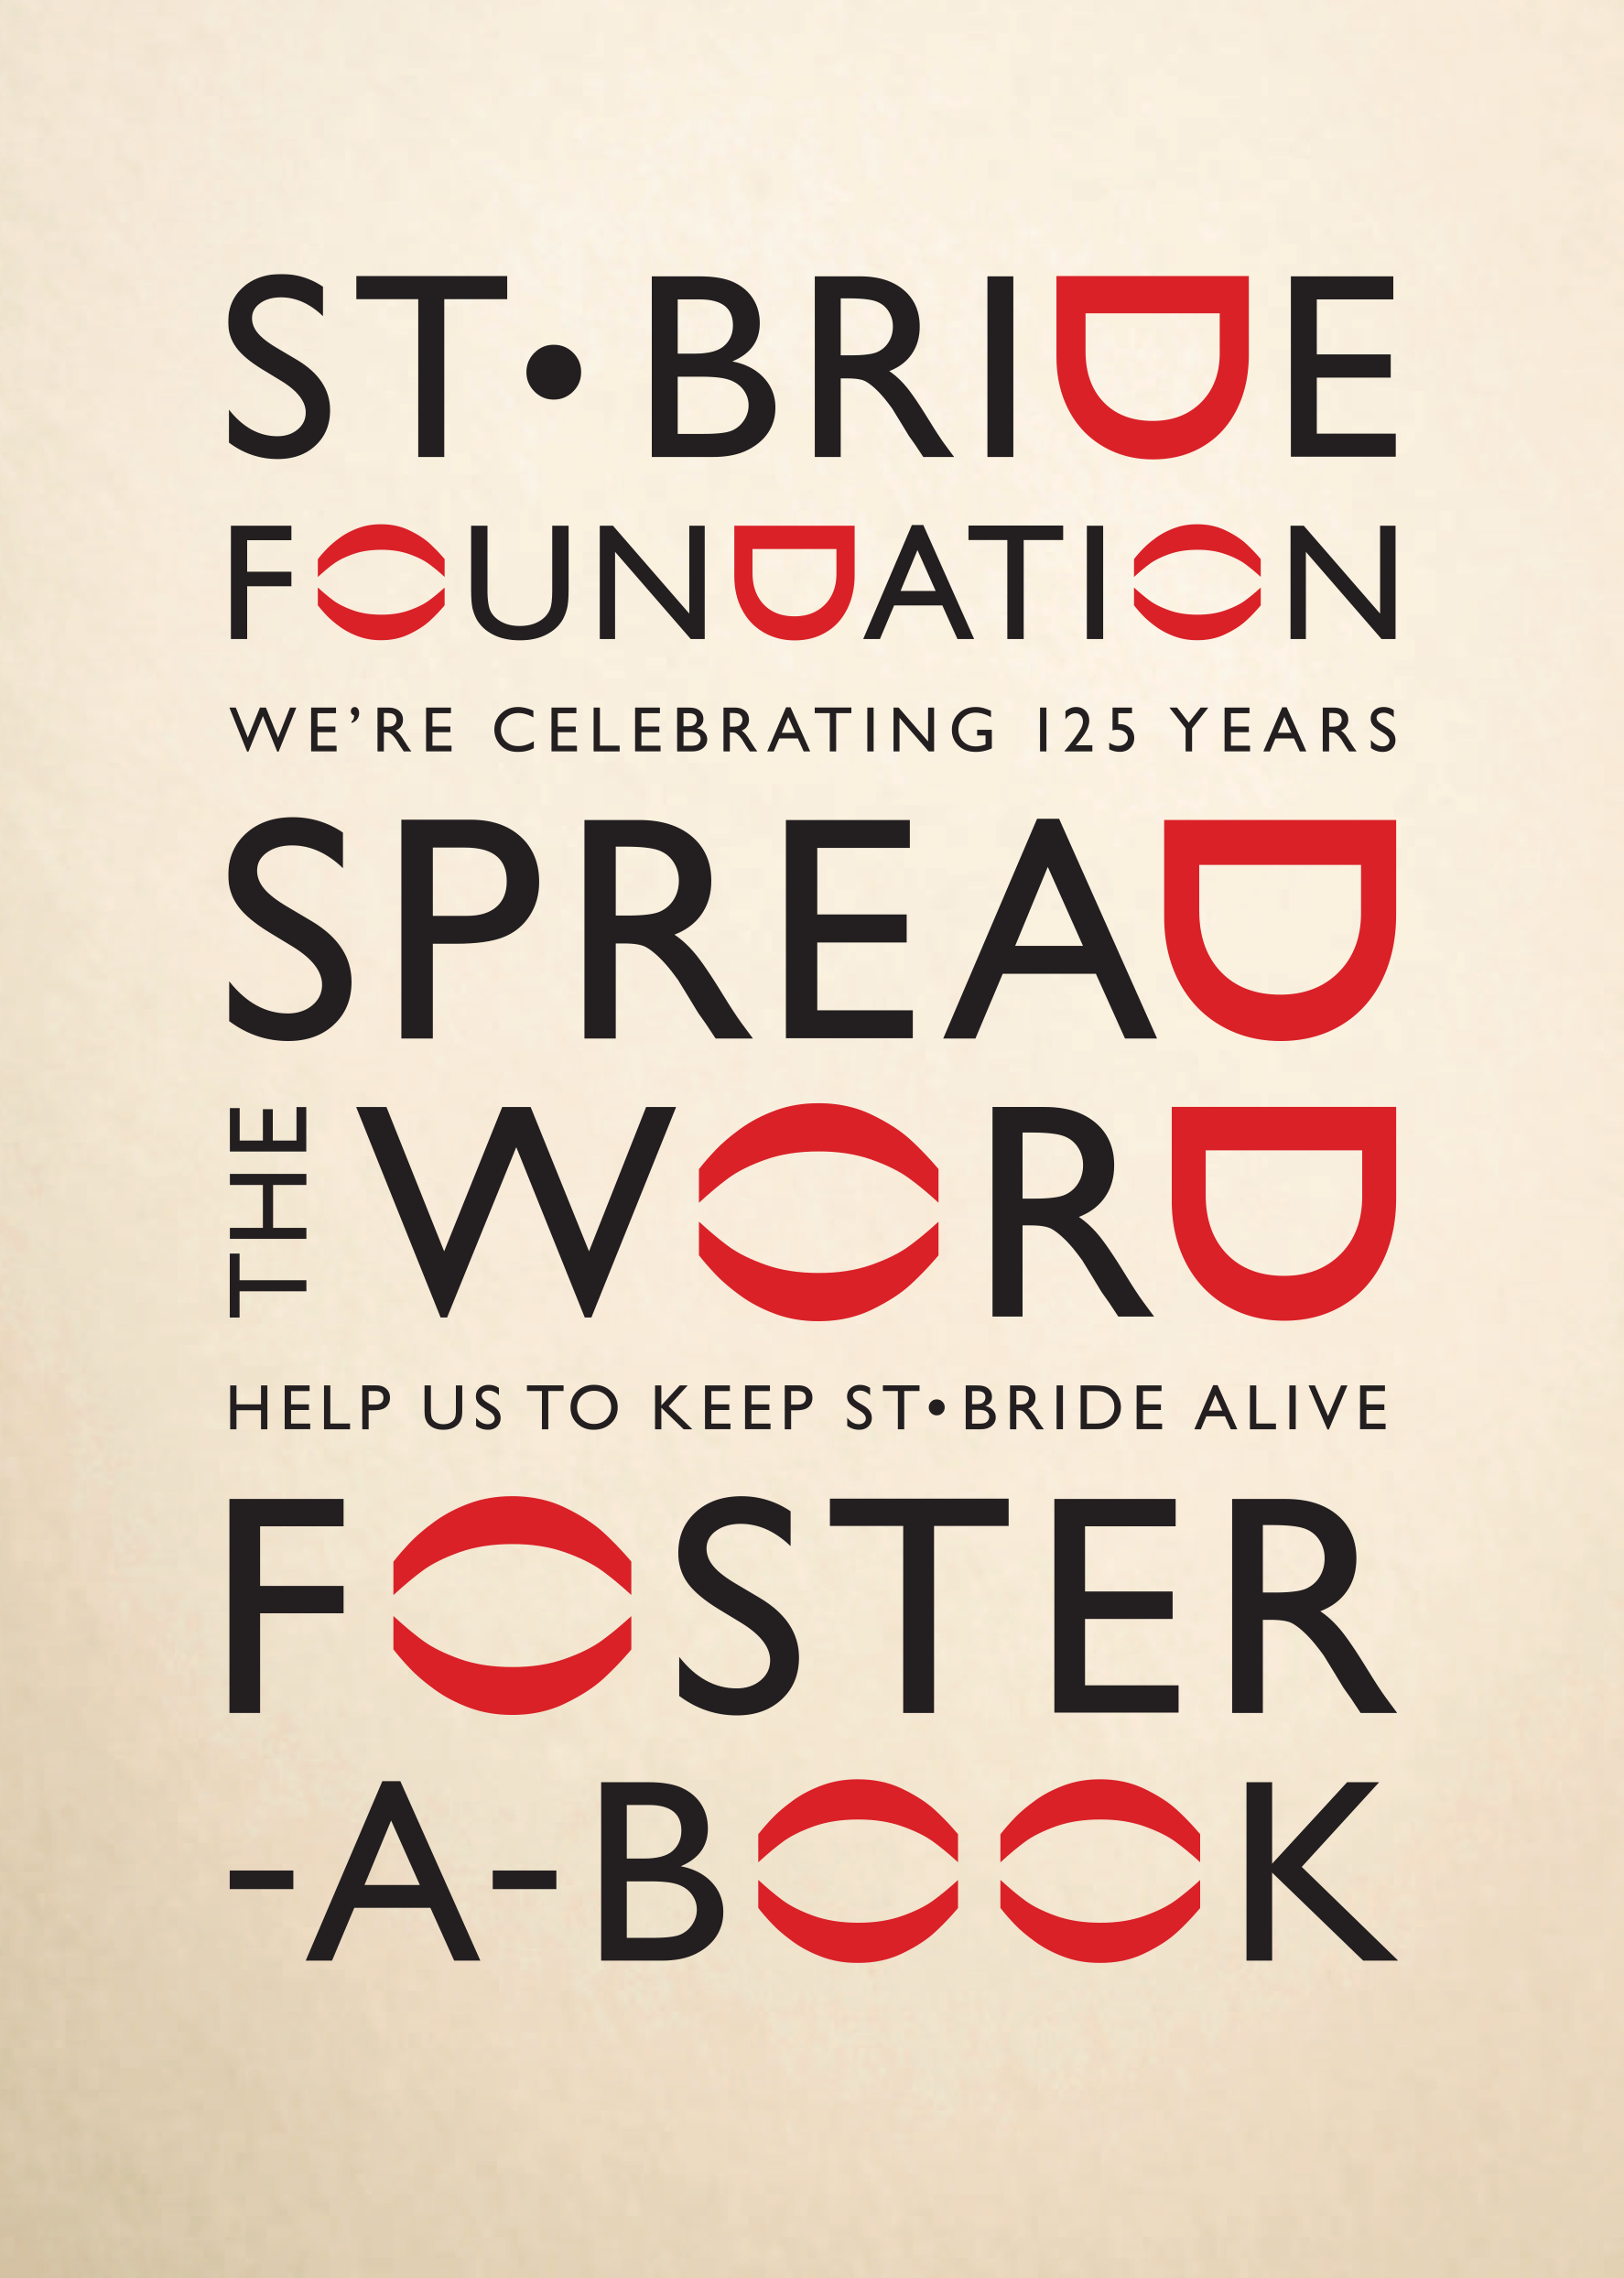 St Bride Foundation Poster 1